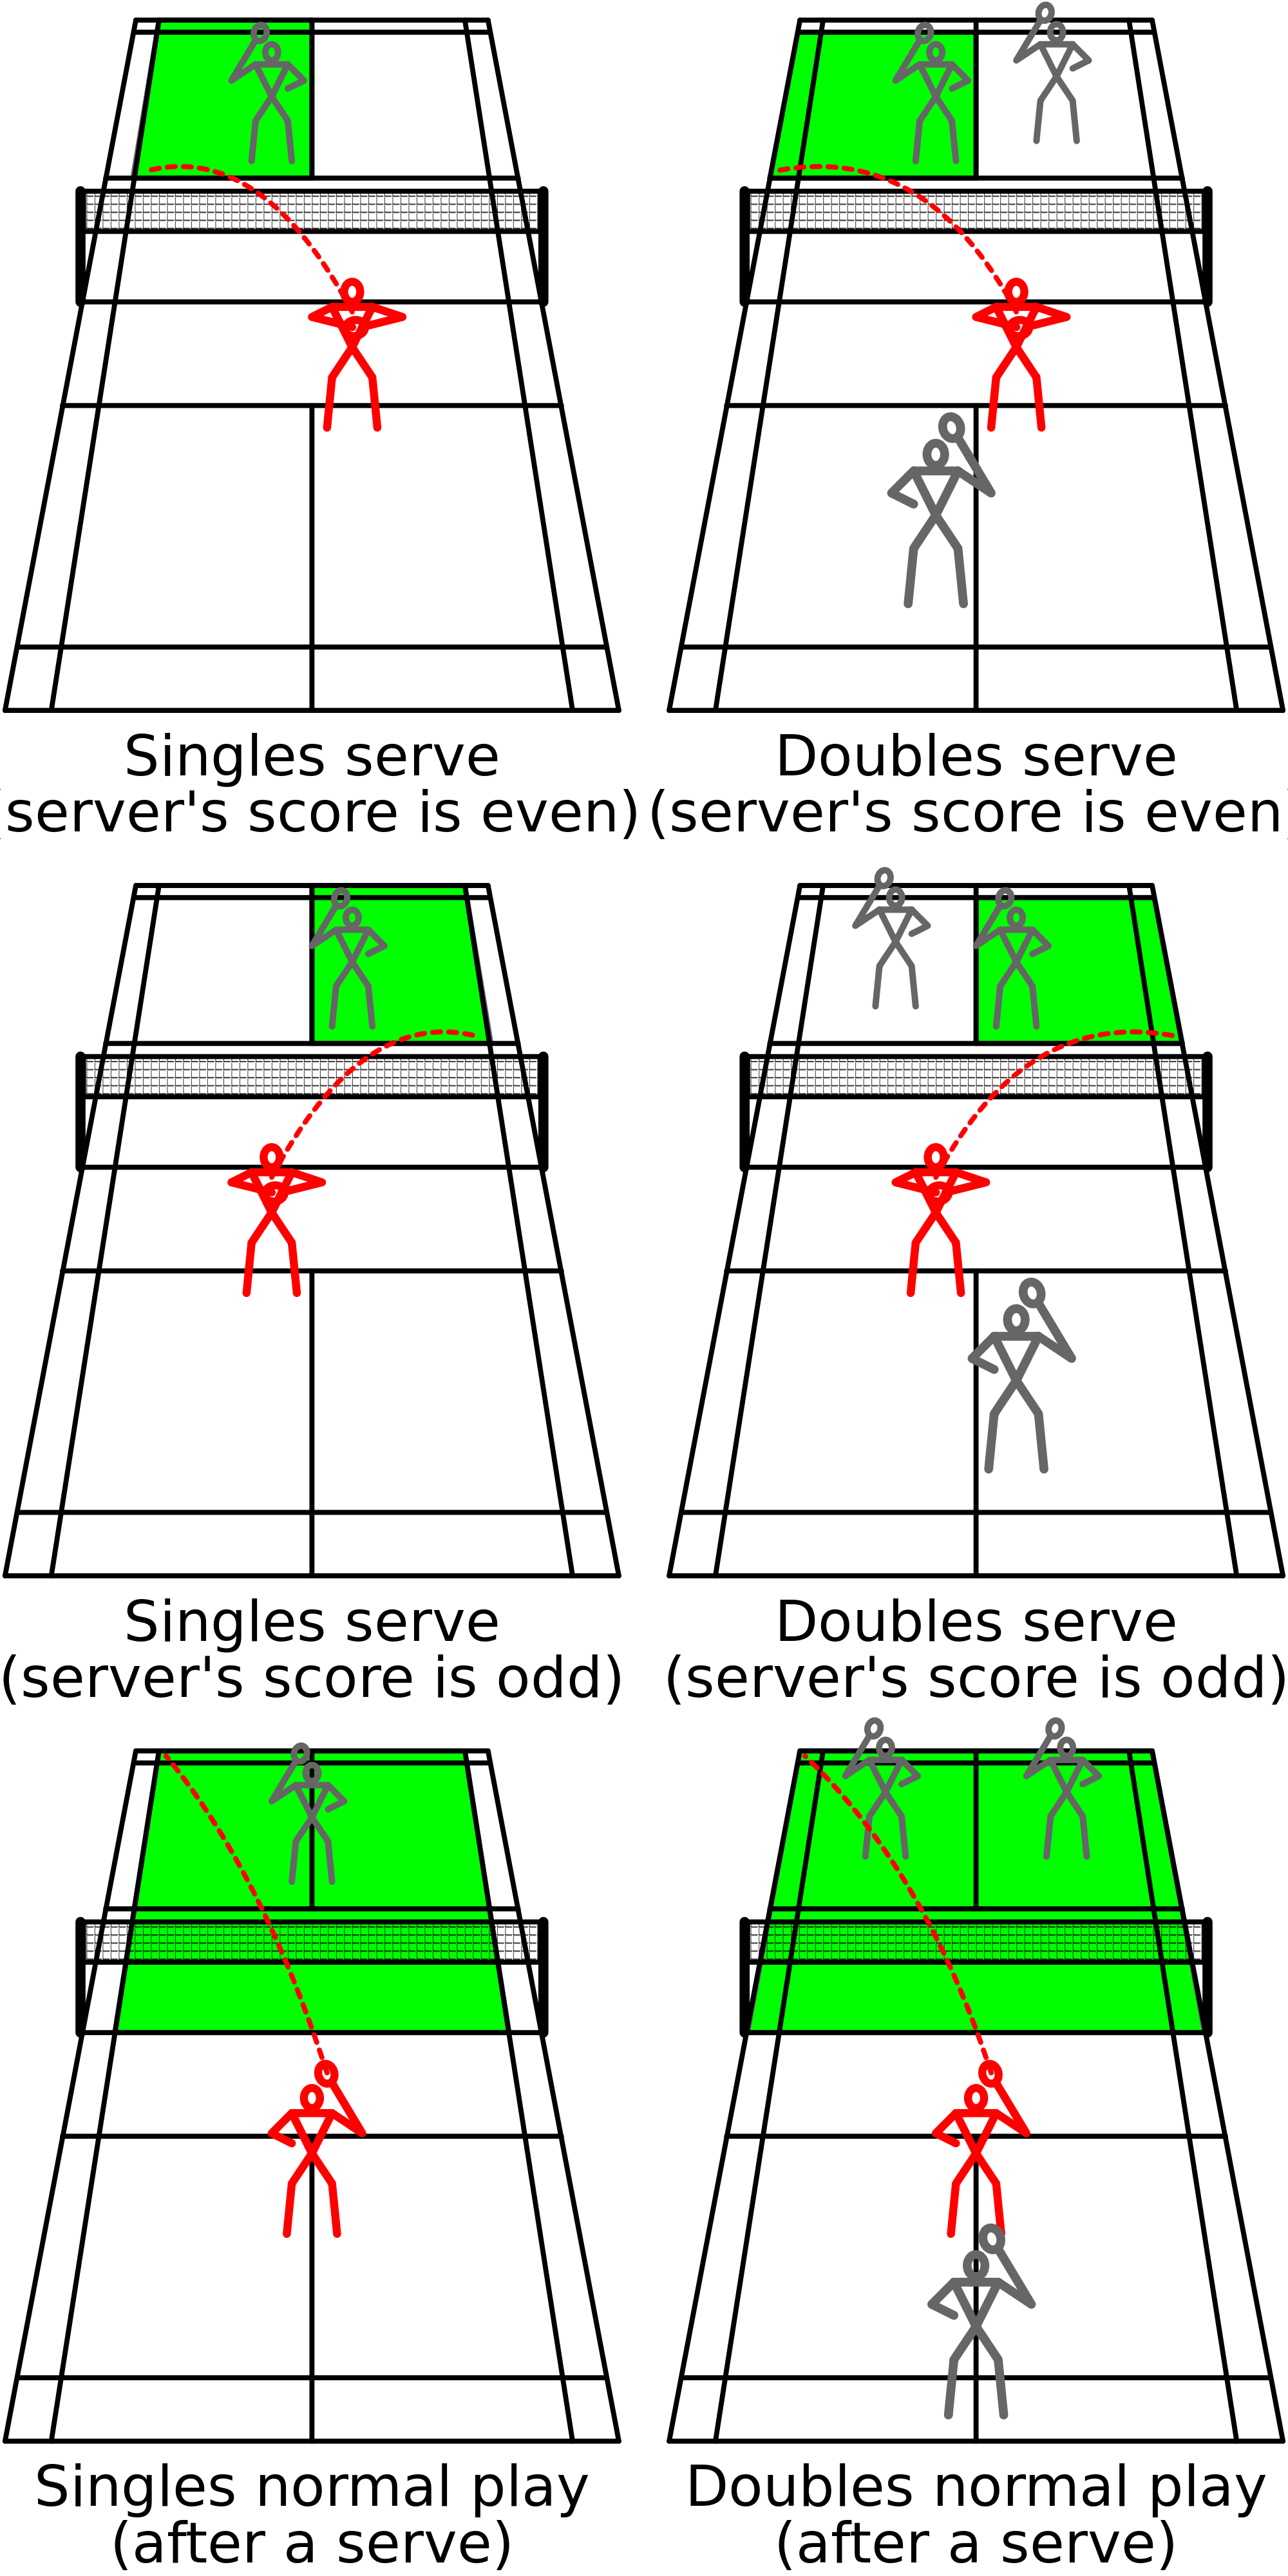 The Legal Bounds Of A Badminton Court During Various Stages Of A Rally For Singles And Doubles Games Badminton Rules Badminton Games Badminton Court